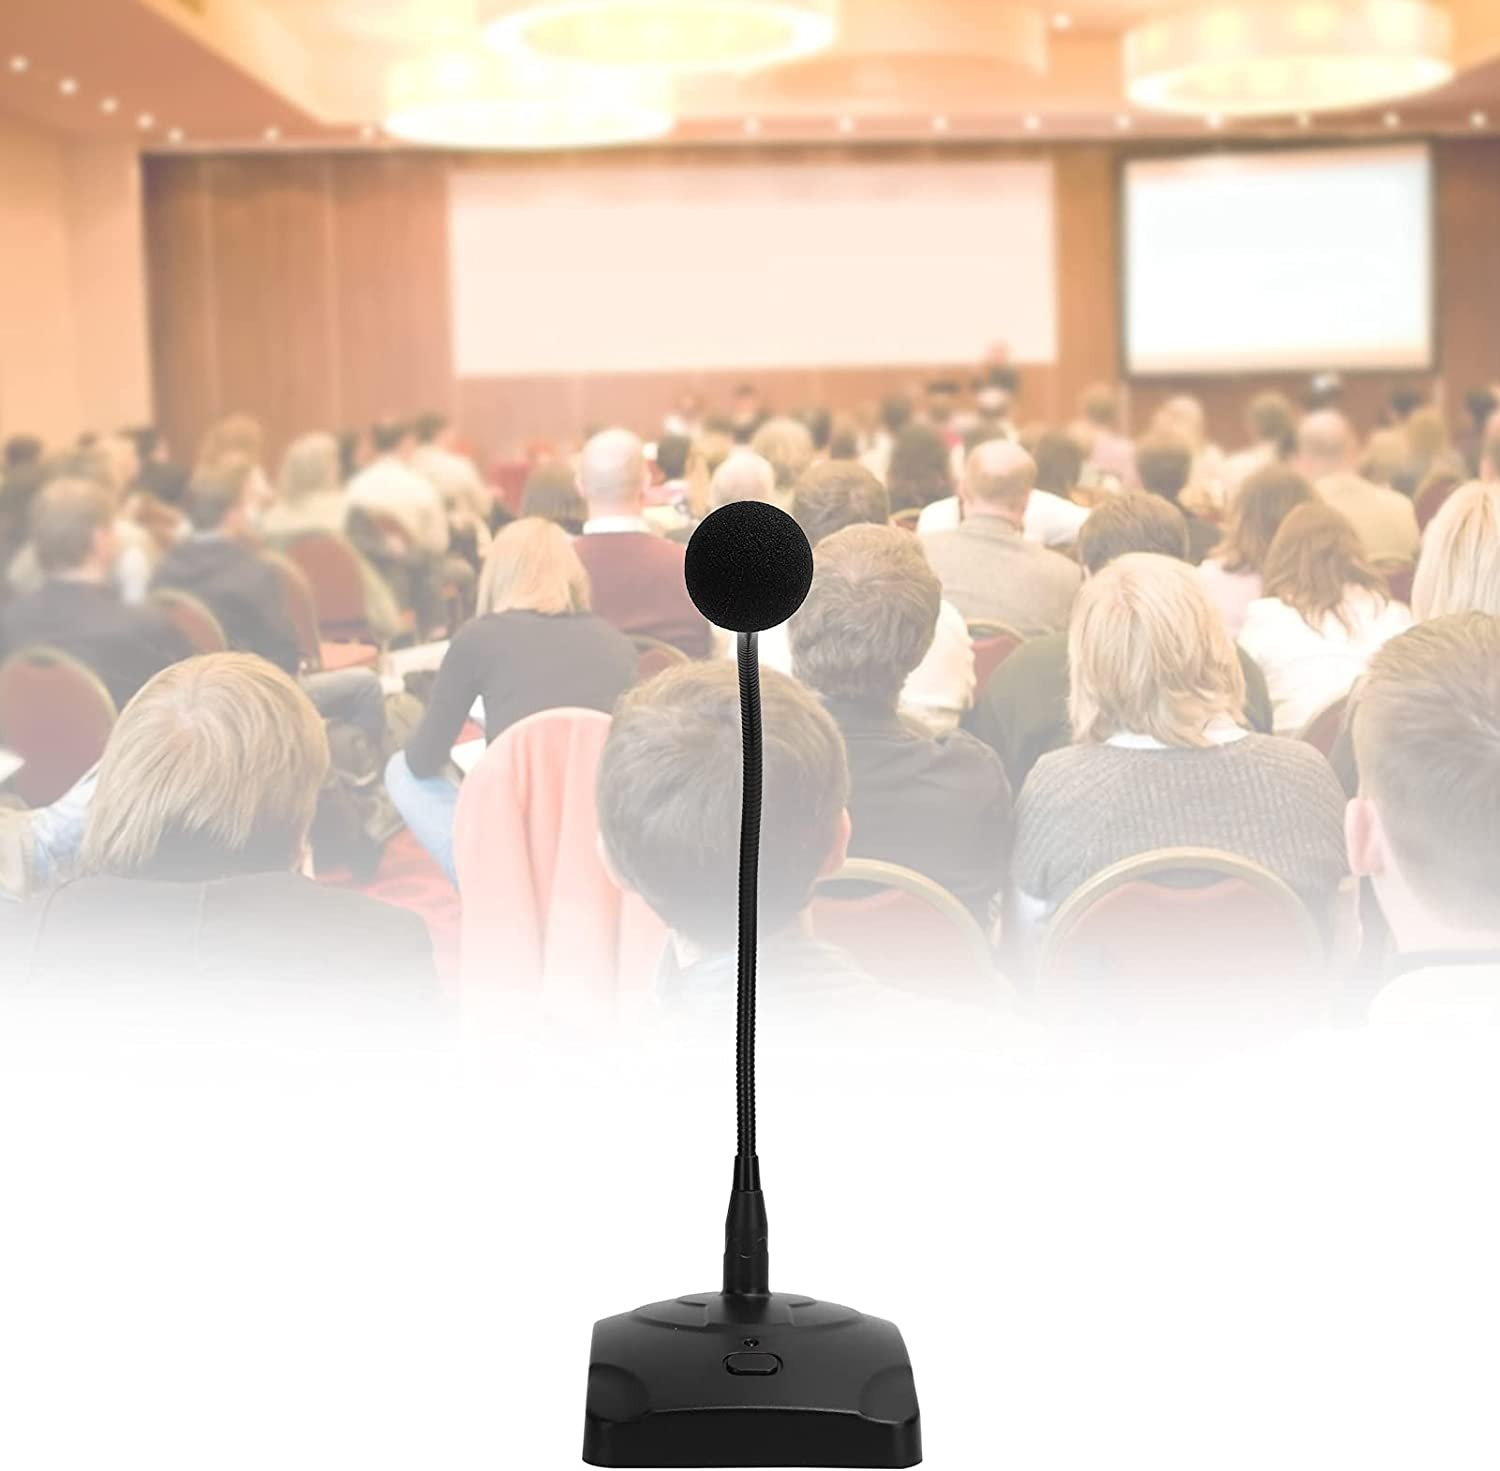 Vbestlife Wired Ranking TOP20 Microphone Highly Popular brand Sensitive Micropho Conference